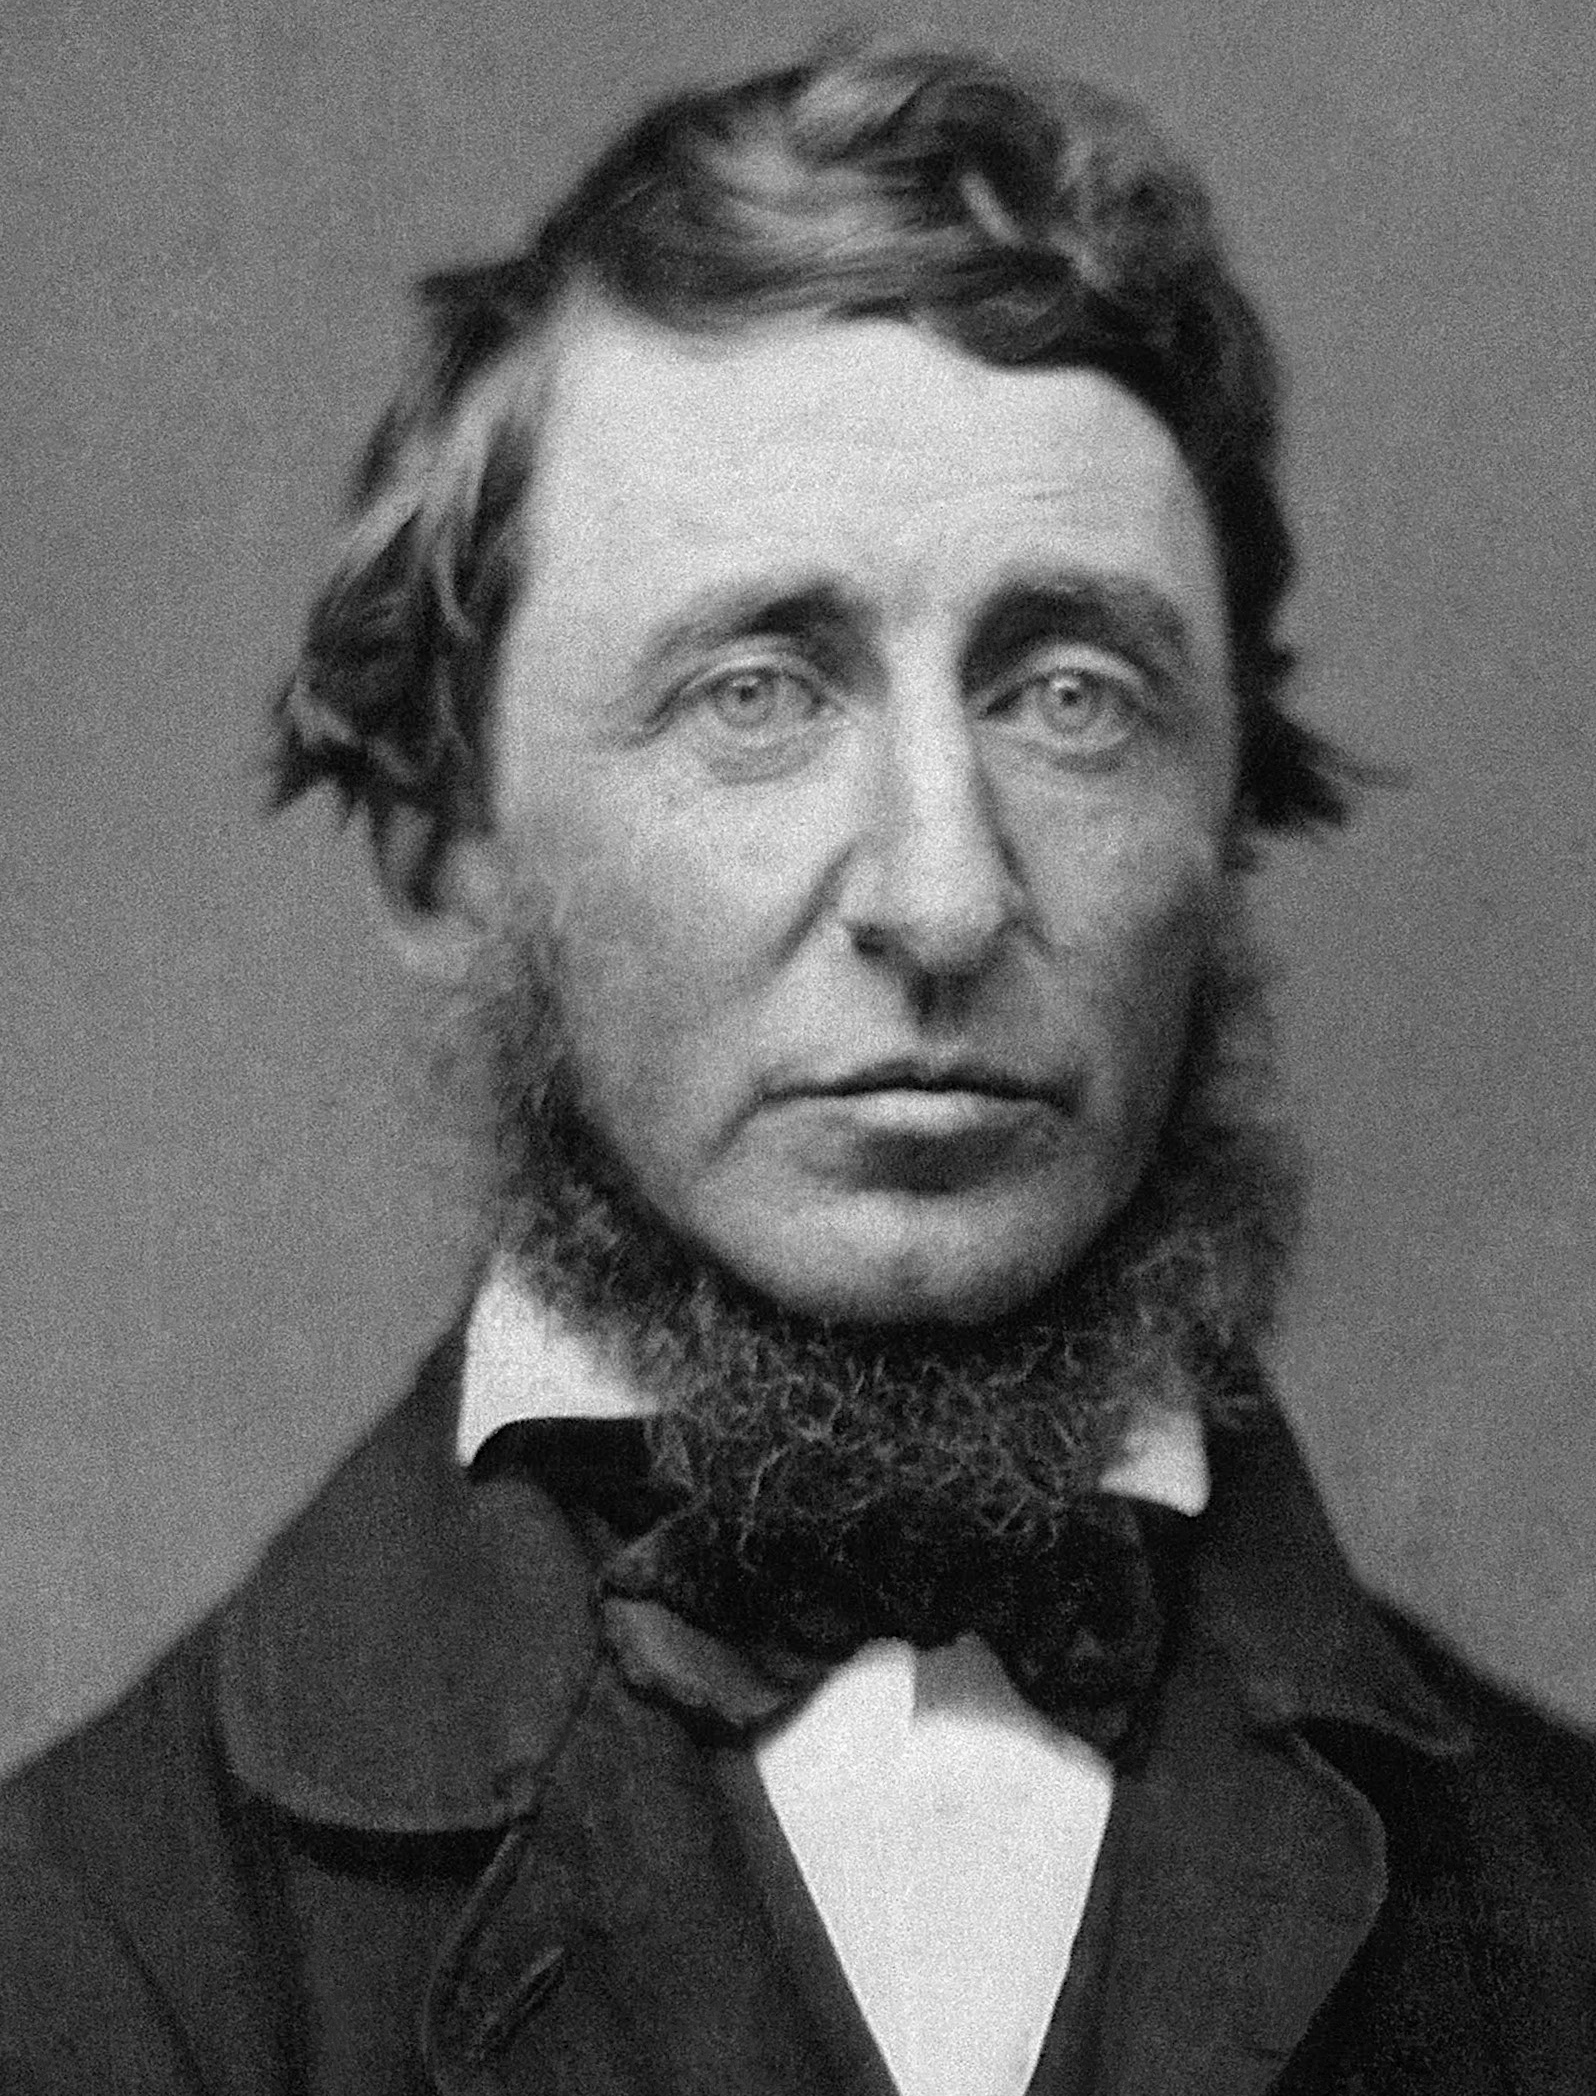 Portrait by Benjamin D. Maxham ([[daguerreotype]]) of Henry David Thoreau in June 1856.